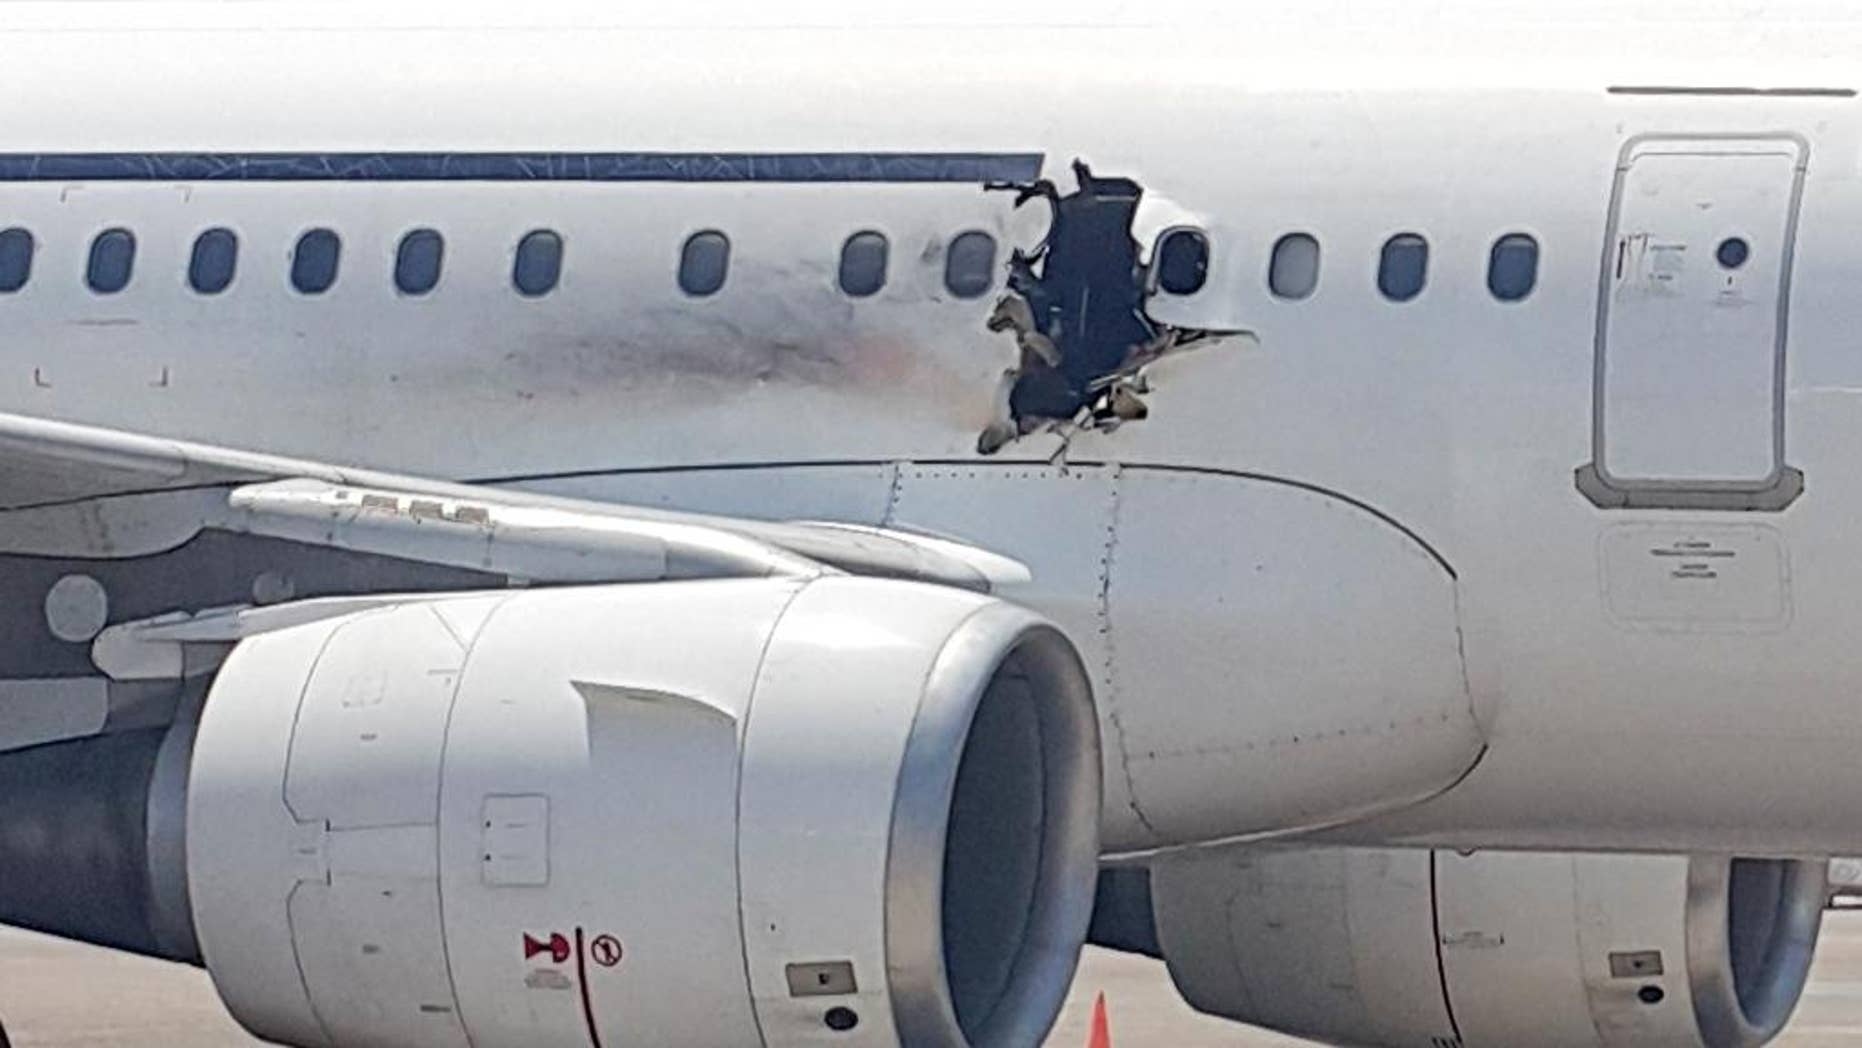 FILE - In this Tuesday, Feb. 2, 2016 file photo, of a  hole in a plane operated by Daallo Airlines as it sits on the runway of the airport in Mogadishu, Somalia. A military court in the Somali capital has given life terms Monday, May 30, 2016 to two men convicted of masterminding the bombing in February of the airliner which made an emergency landing with a gaping hole in its fuselage. (AP Photo, File)